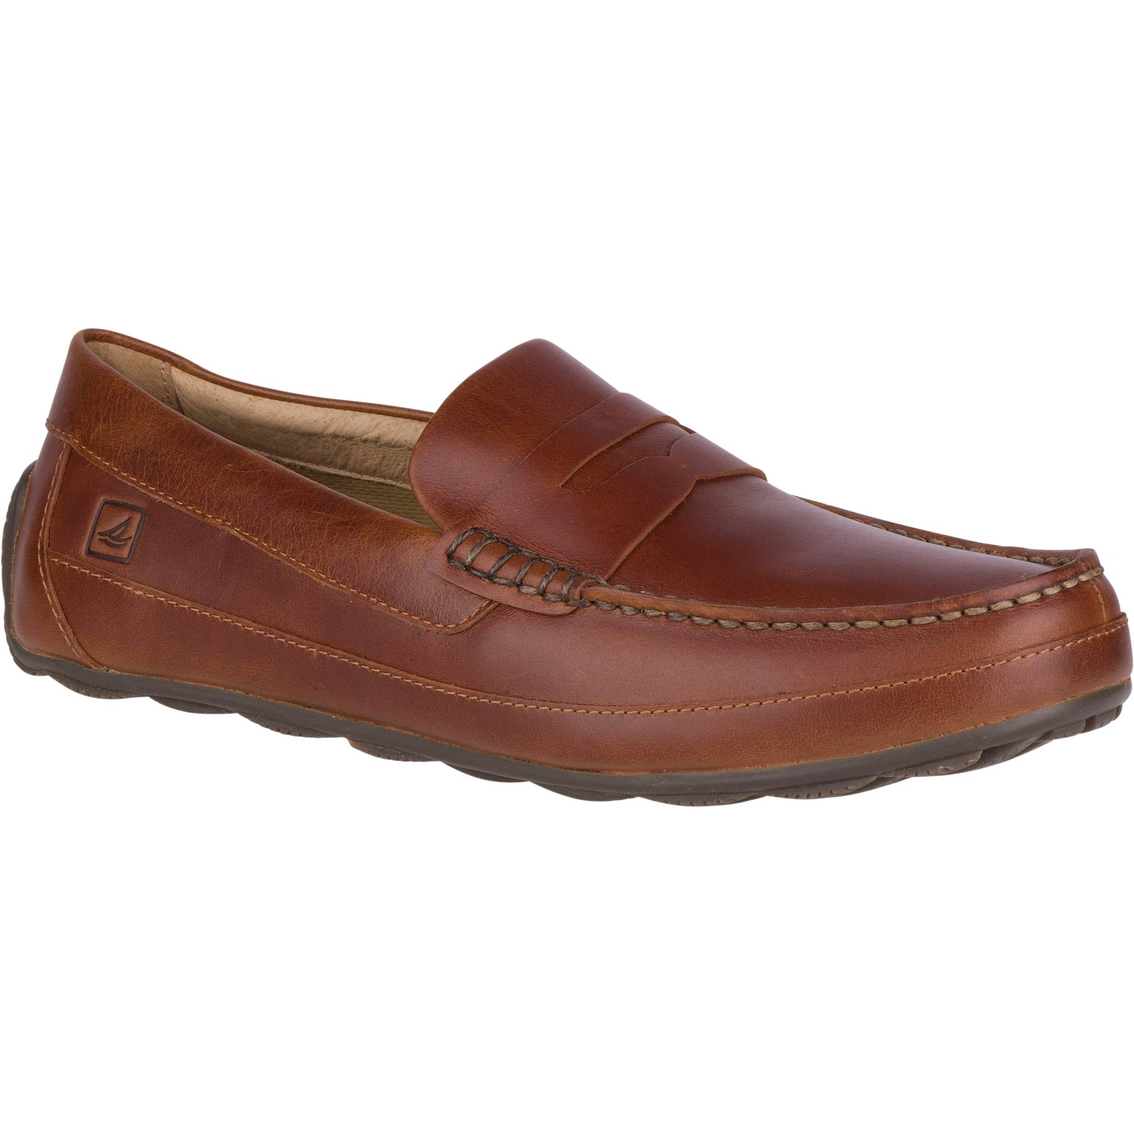 60832c2c8ff Sperry Men s Hampden Penny Loafers